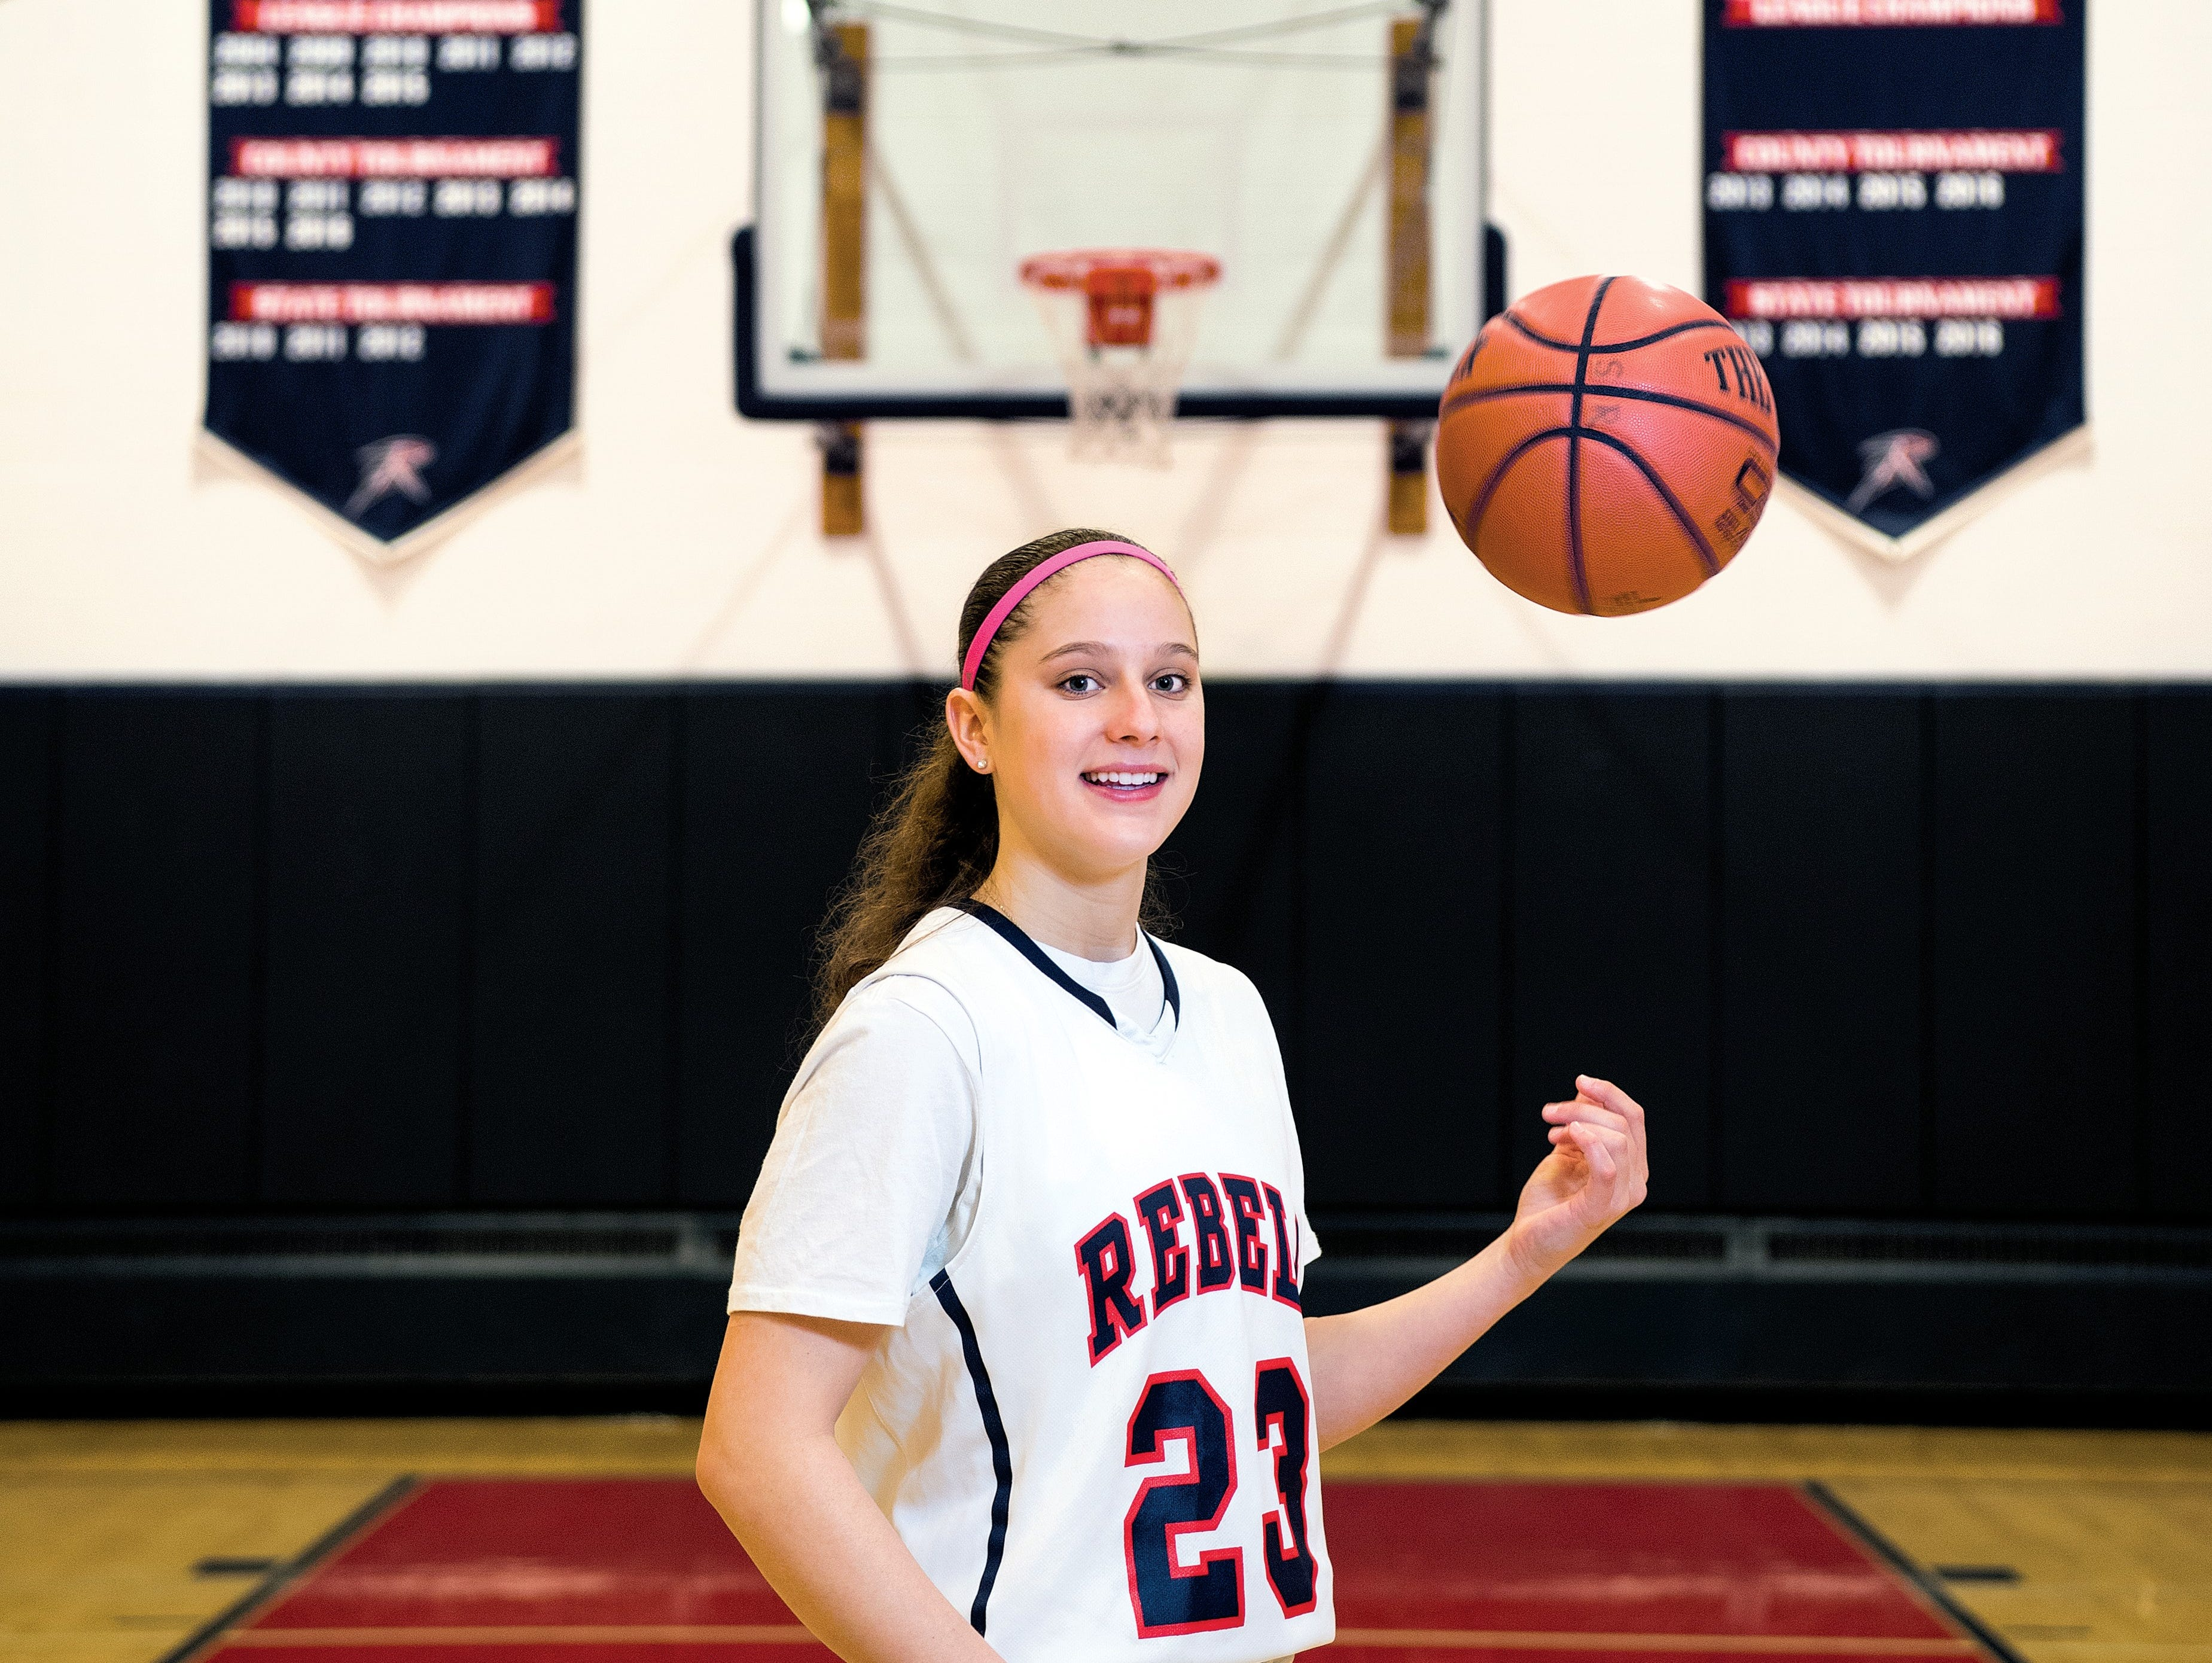 Michelle Sidor has become the first Bergen County girls' basketball player to ever reach 2,000 points as a junior.